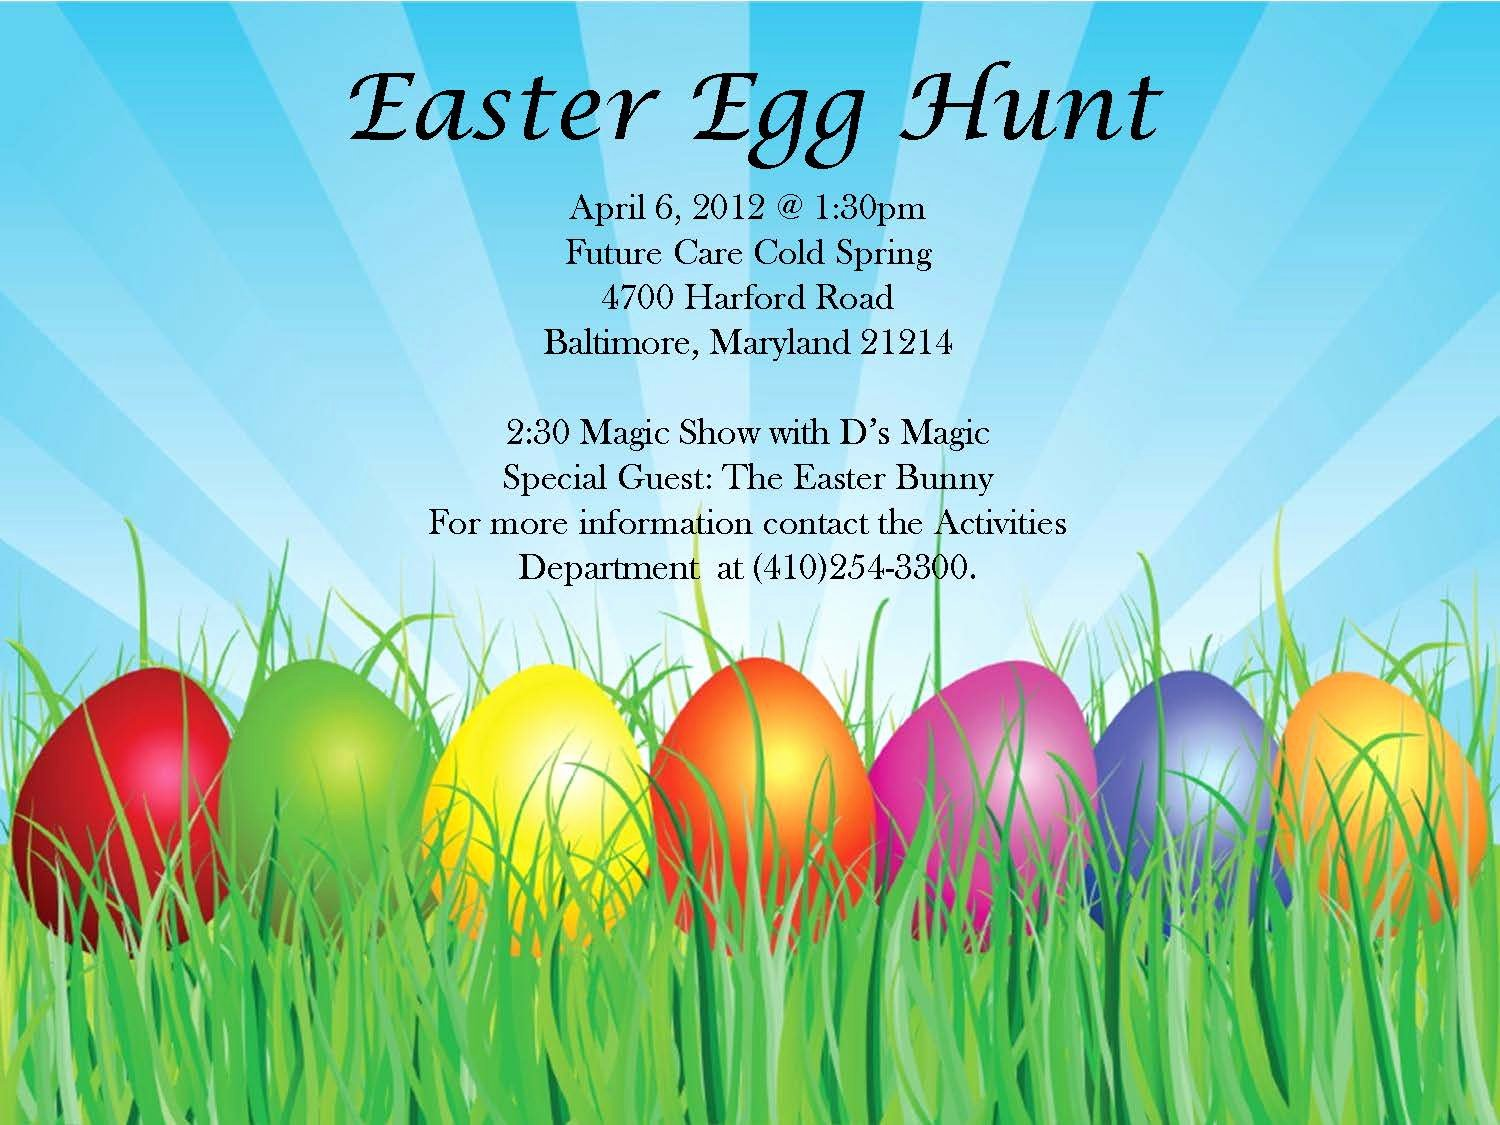 Free Easter Flyer Templates Elegant Hamilton Lauraville Main Street News Easter Egg Hunt at Future Care Cold Spring Baltimore